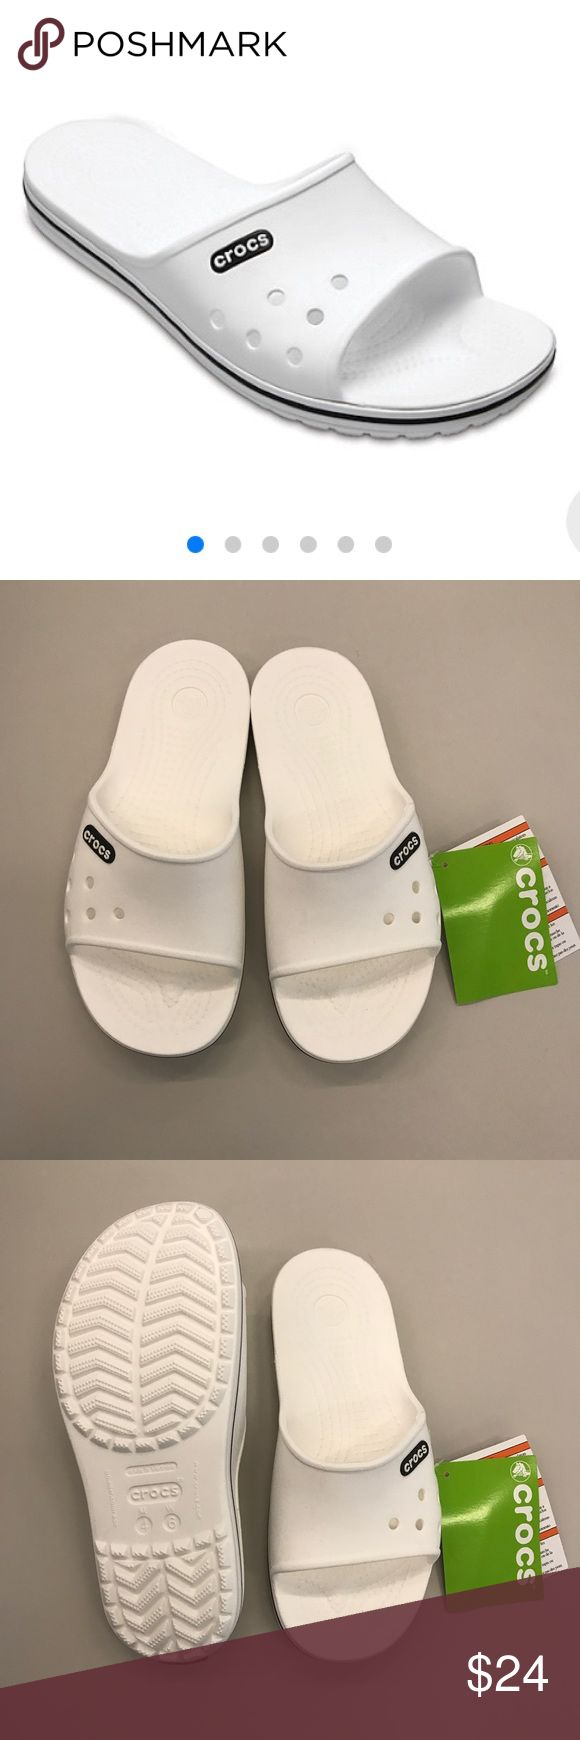 NWT CROCS CROCBAND CROC BAND slide II white sz 6 Brand new with tags slides by crocs, size 6. Never worn perfect condition. Crocband II Slide Item #204108   Athletic-inspired style gets an update in the Crocband™ II Slide with our signature sidewall stripe and a breathable, no-sweat attitude. Whether you're sunning yourself at the pool or cooling down after a workout, this incredibly light and versatile slide with our original Croslite™ foam cushion has your back.  Sporty Crocband™ style…